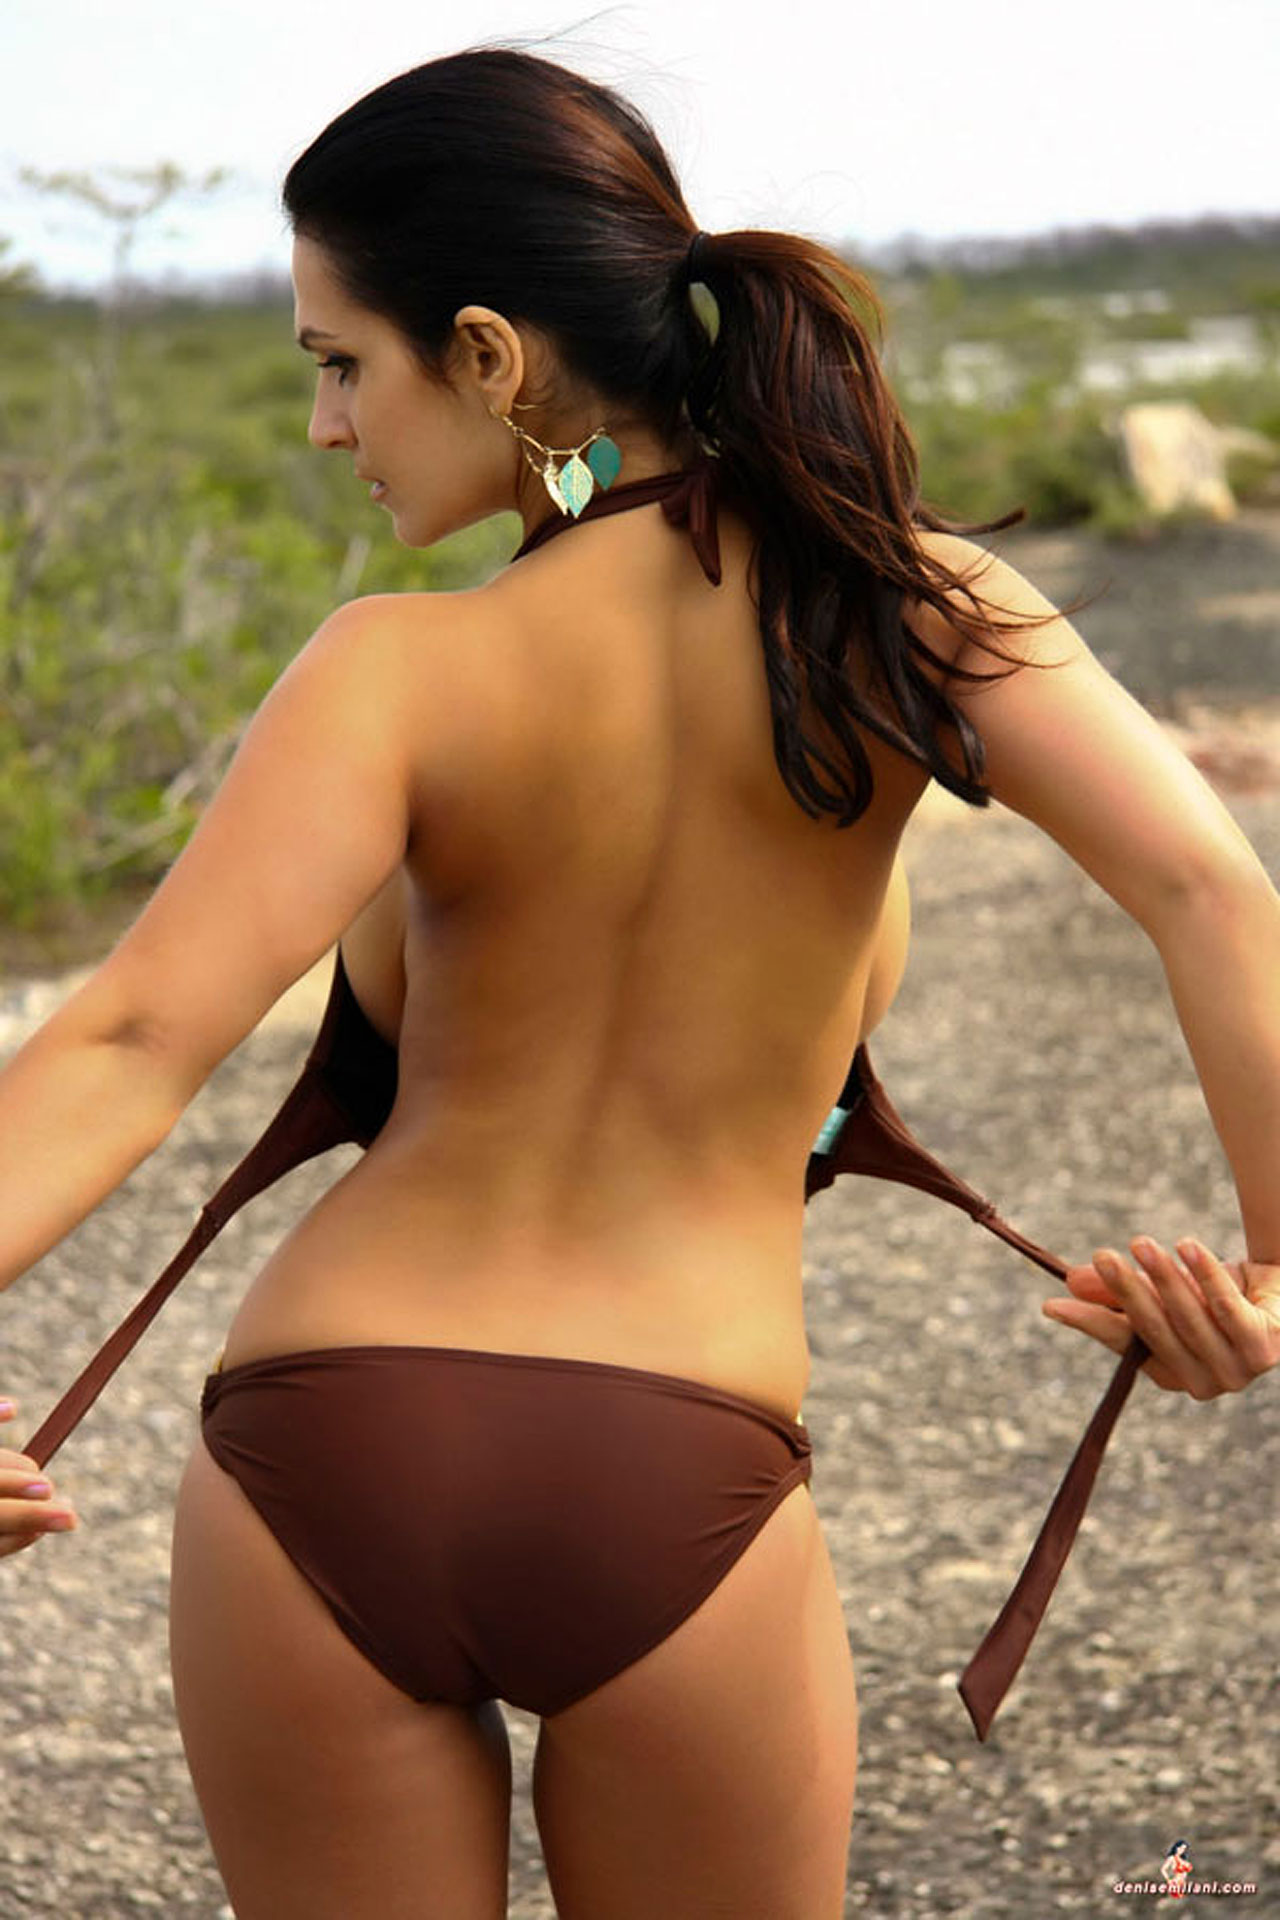 denise milani nude ass sexy